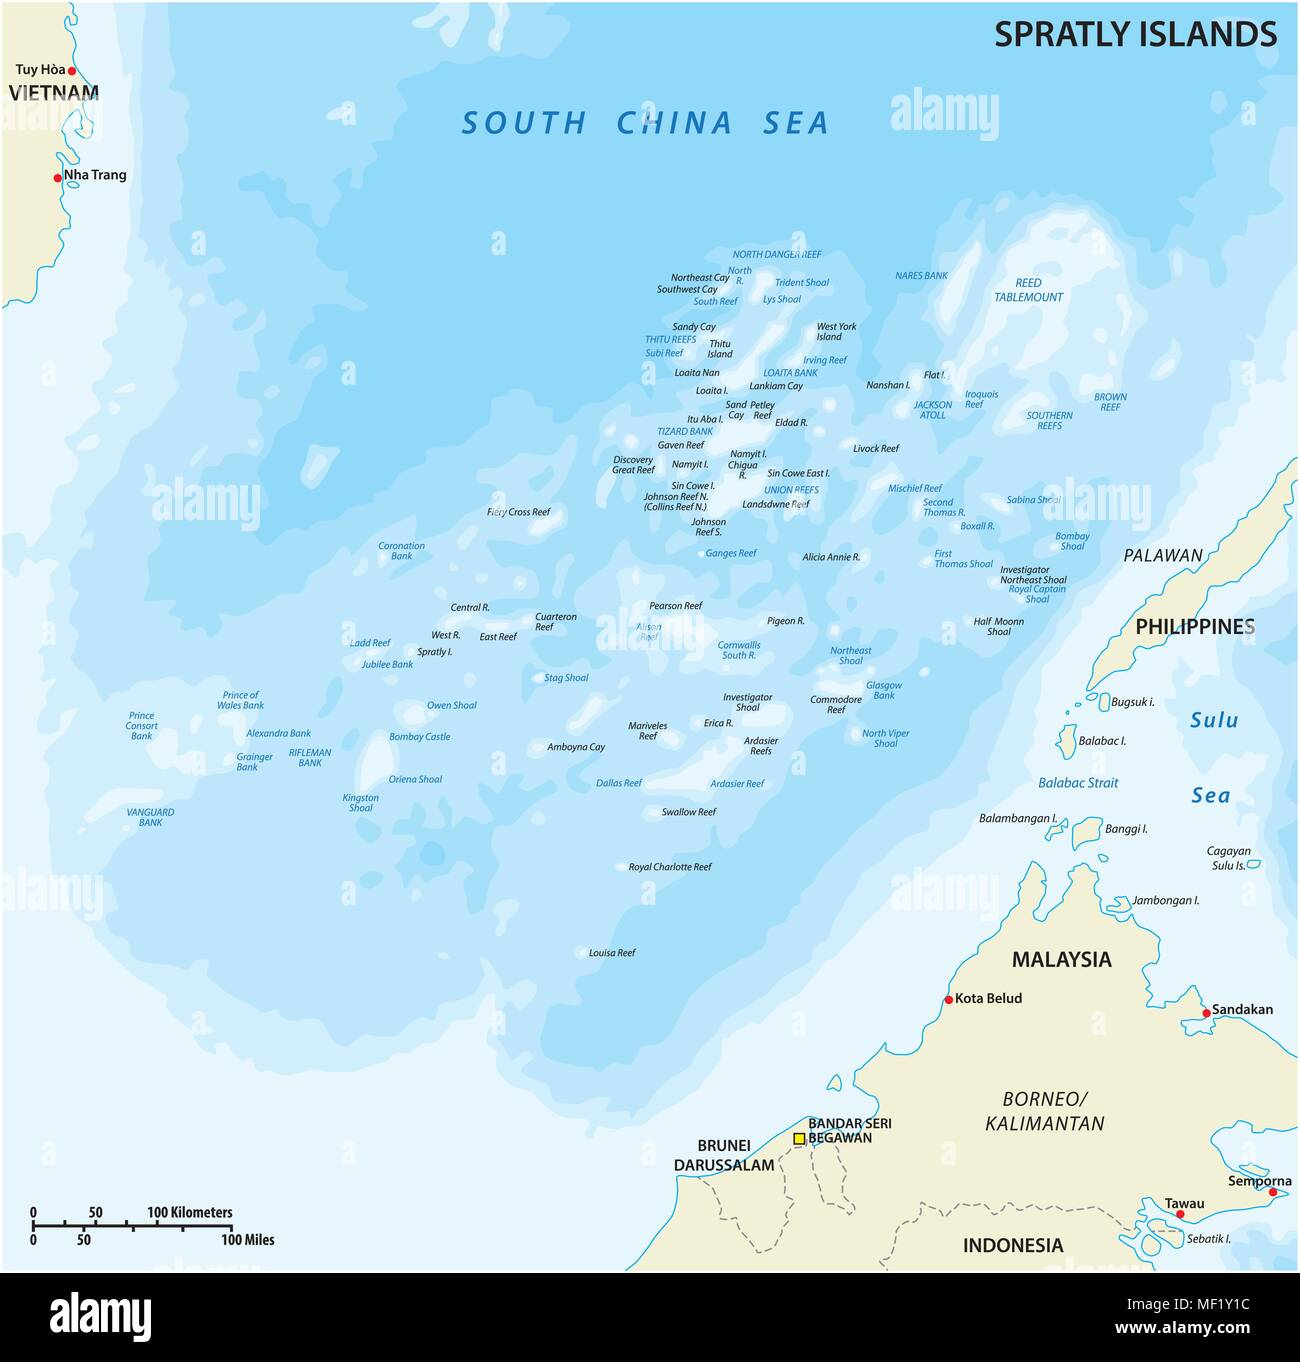 Map of the Malaysia, Philippines, Taiwan, Vietnam, People's Republic of China and Brunei controversial Spratly Islands in the South China Sea - Stock Image